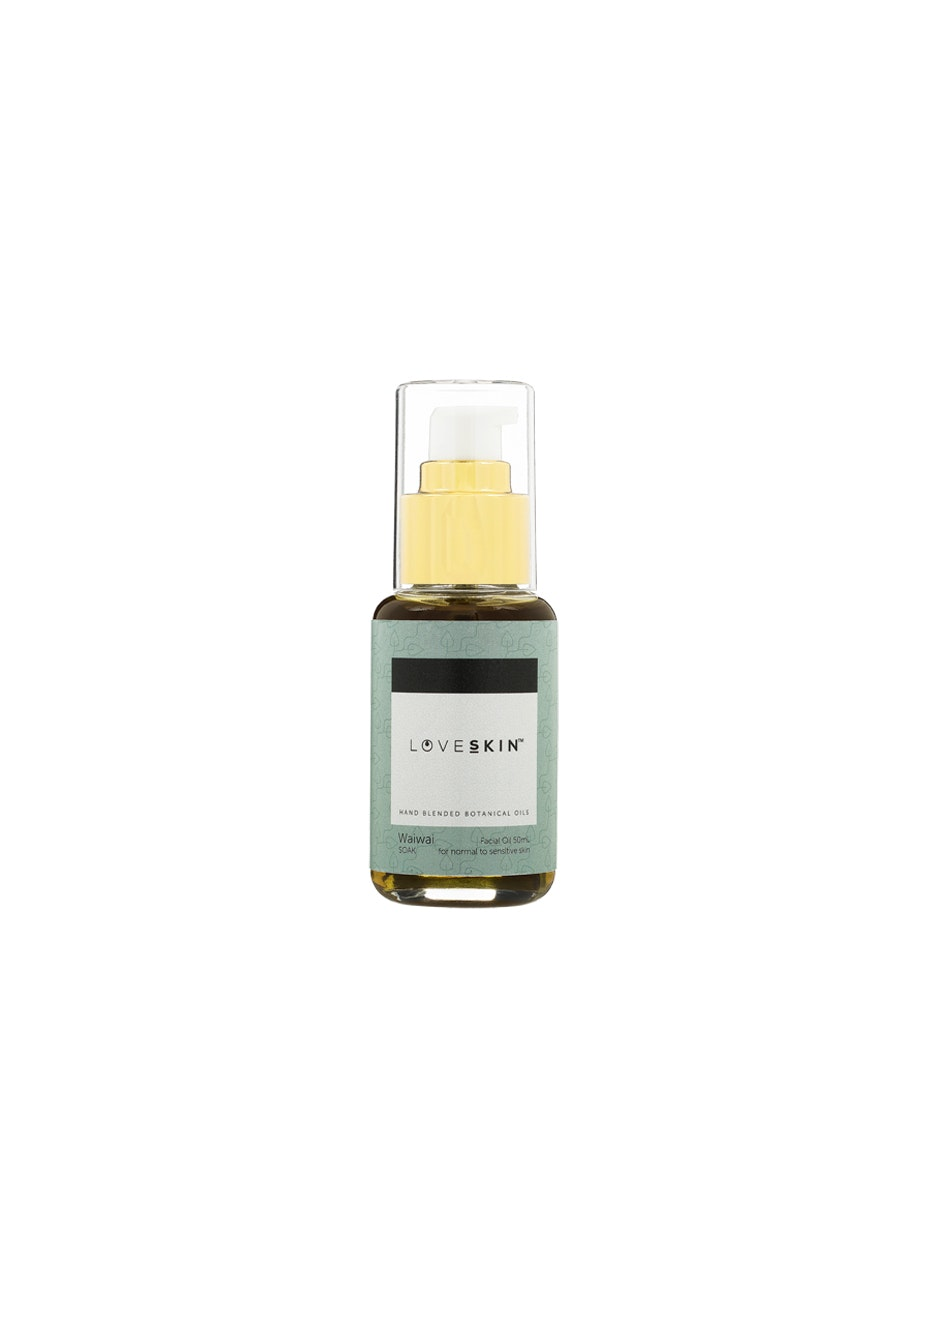 Loveskin - Waiwai Face Oil 50Ml